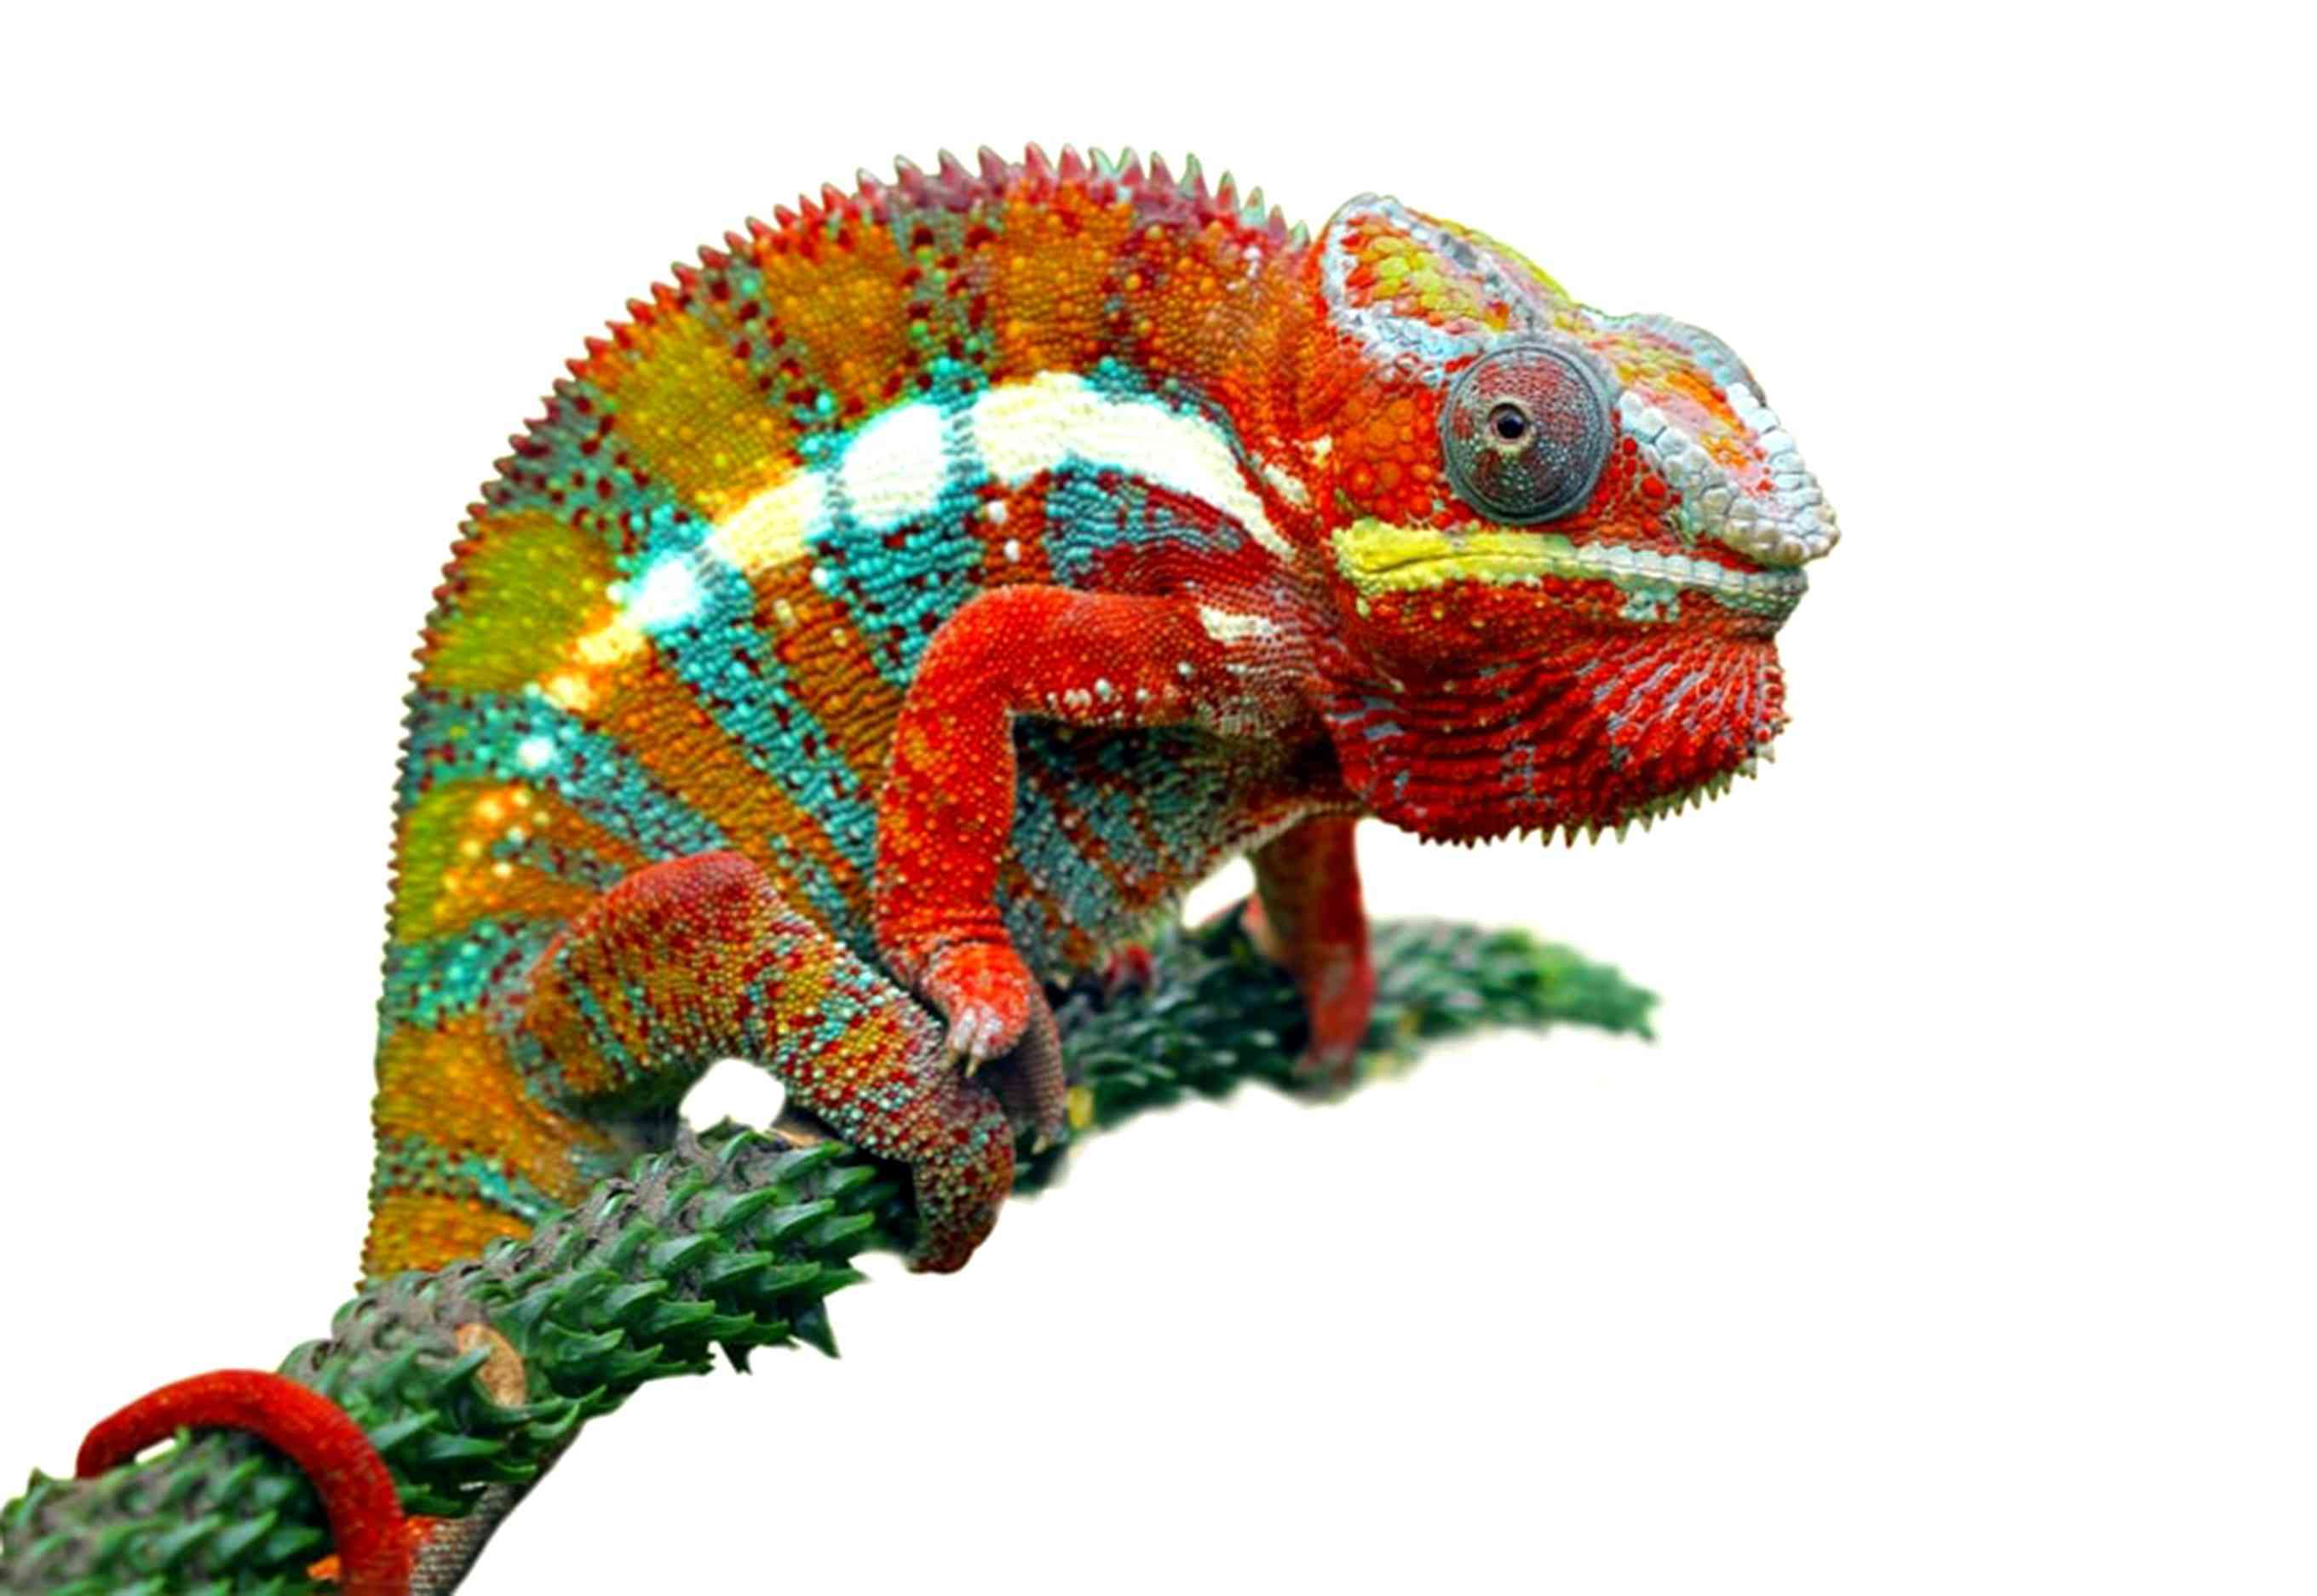 A chameleon displaying vibrant reds, blues, greens, and yellows in dramatic stripes and spots